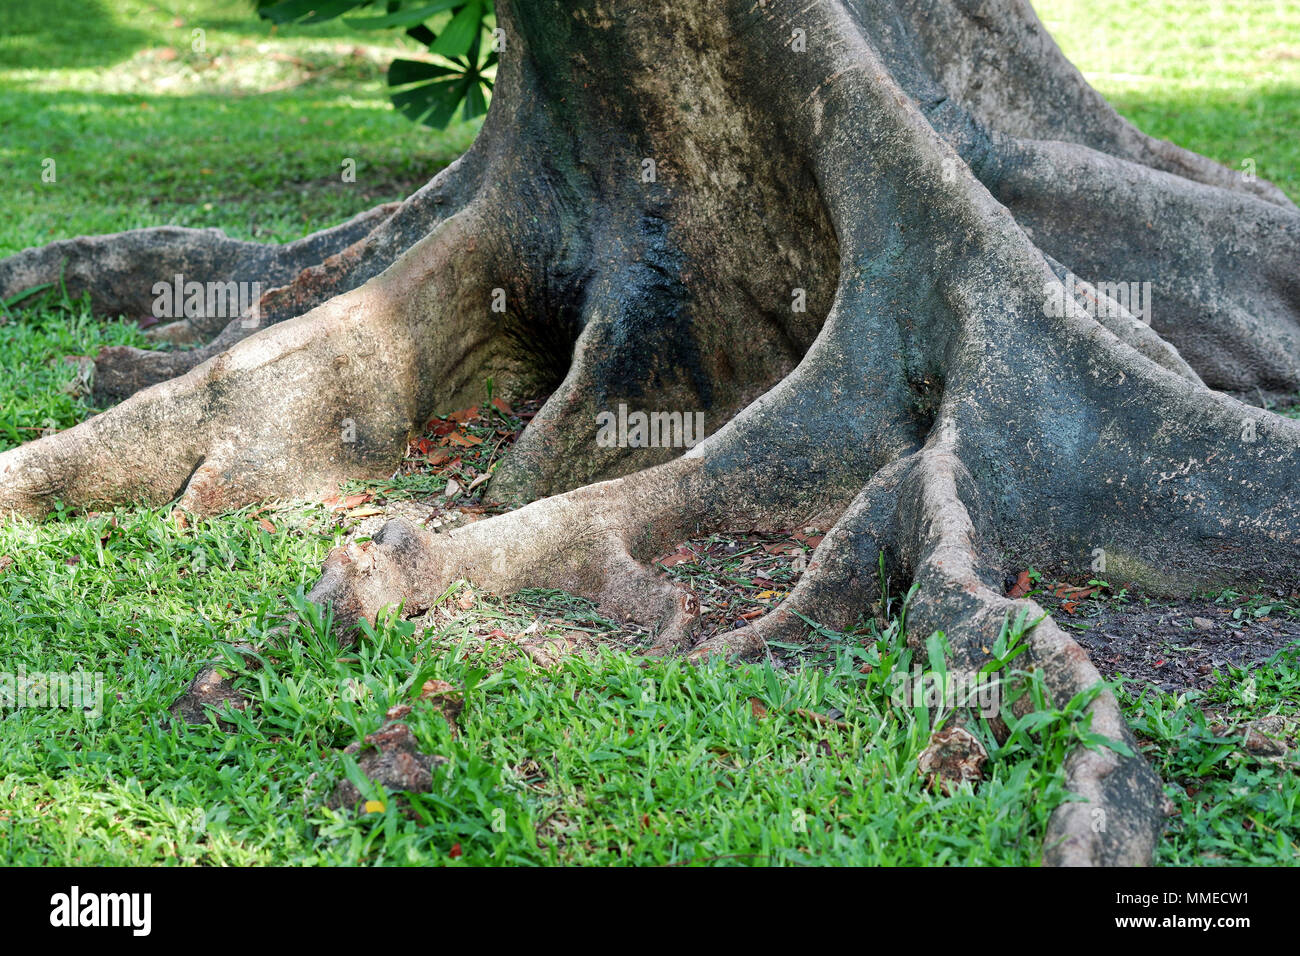 Closeup of Giant Tree Roots - Stock Image